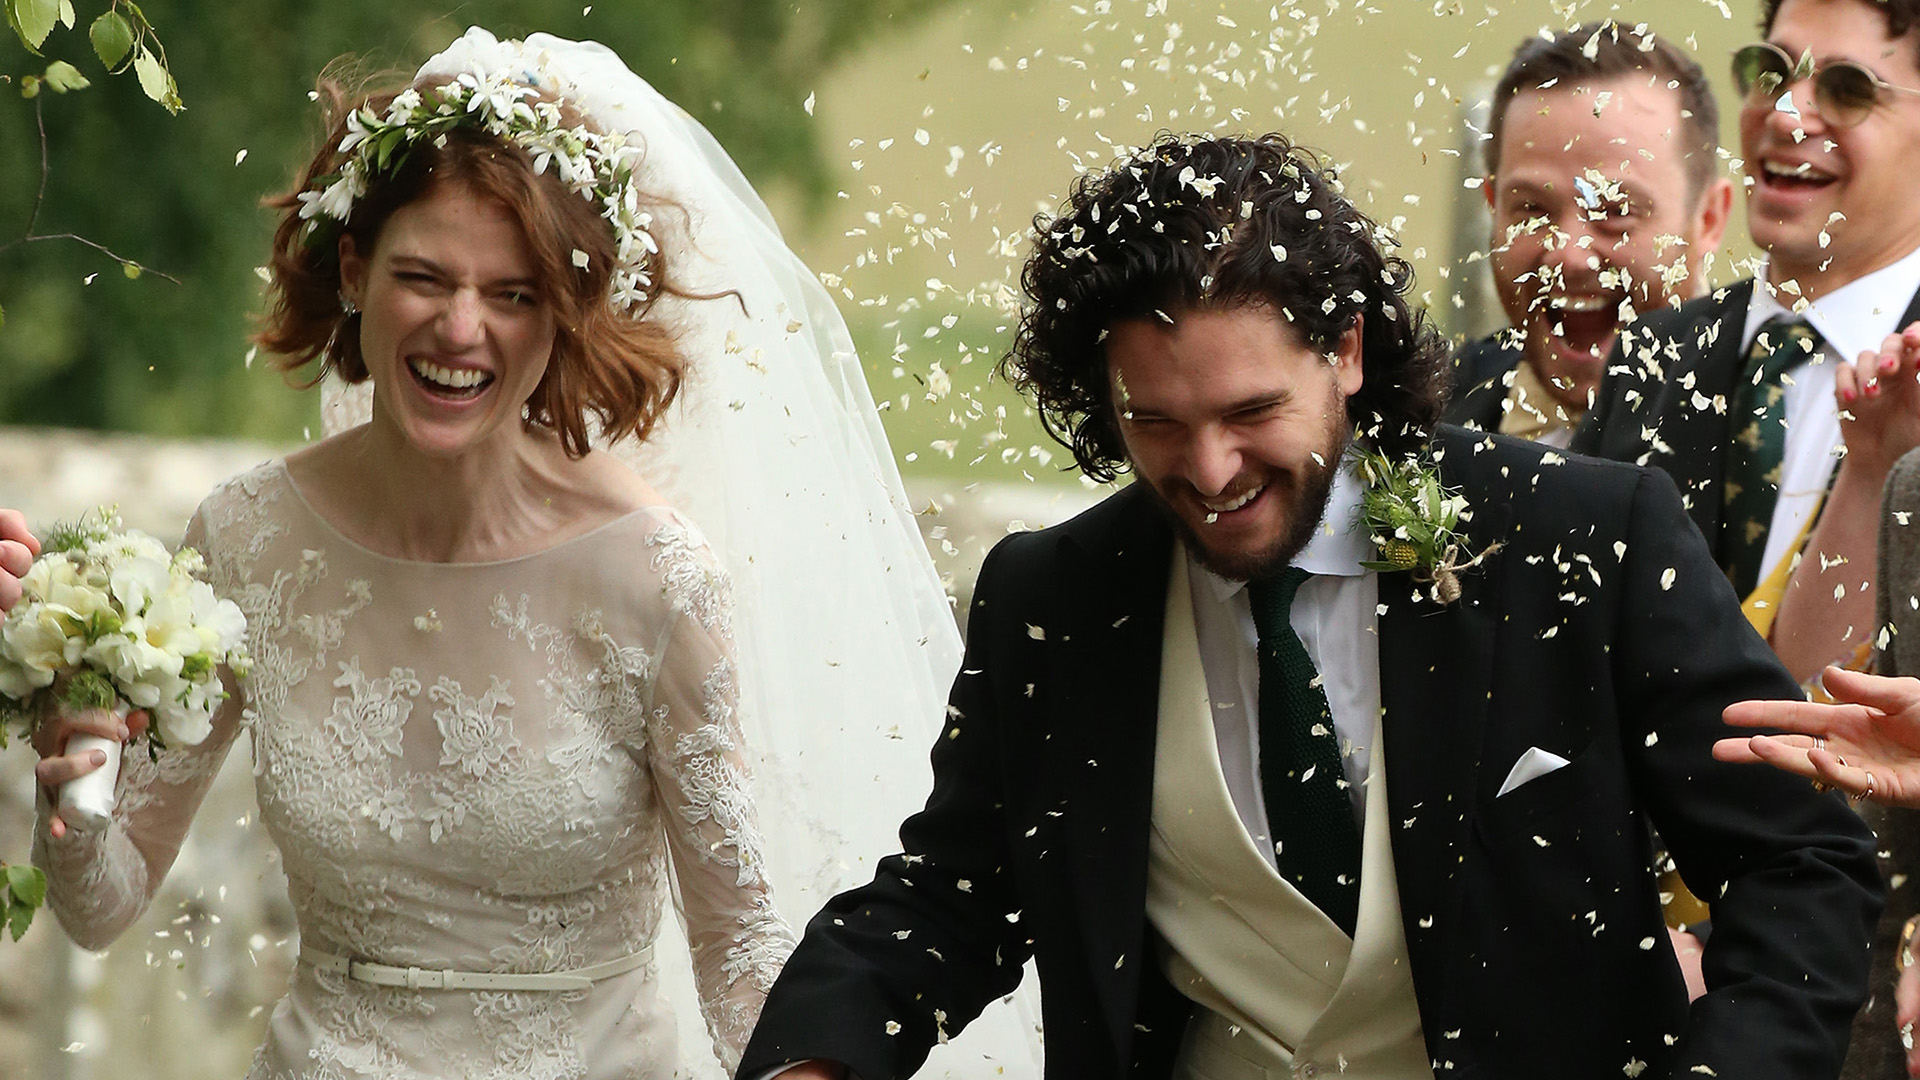 Game Of Thrones Stars Kit Harington And Rose Leslie Tie The Knot In